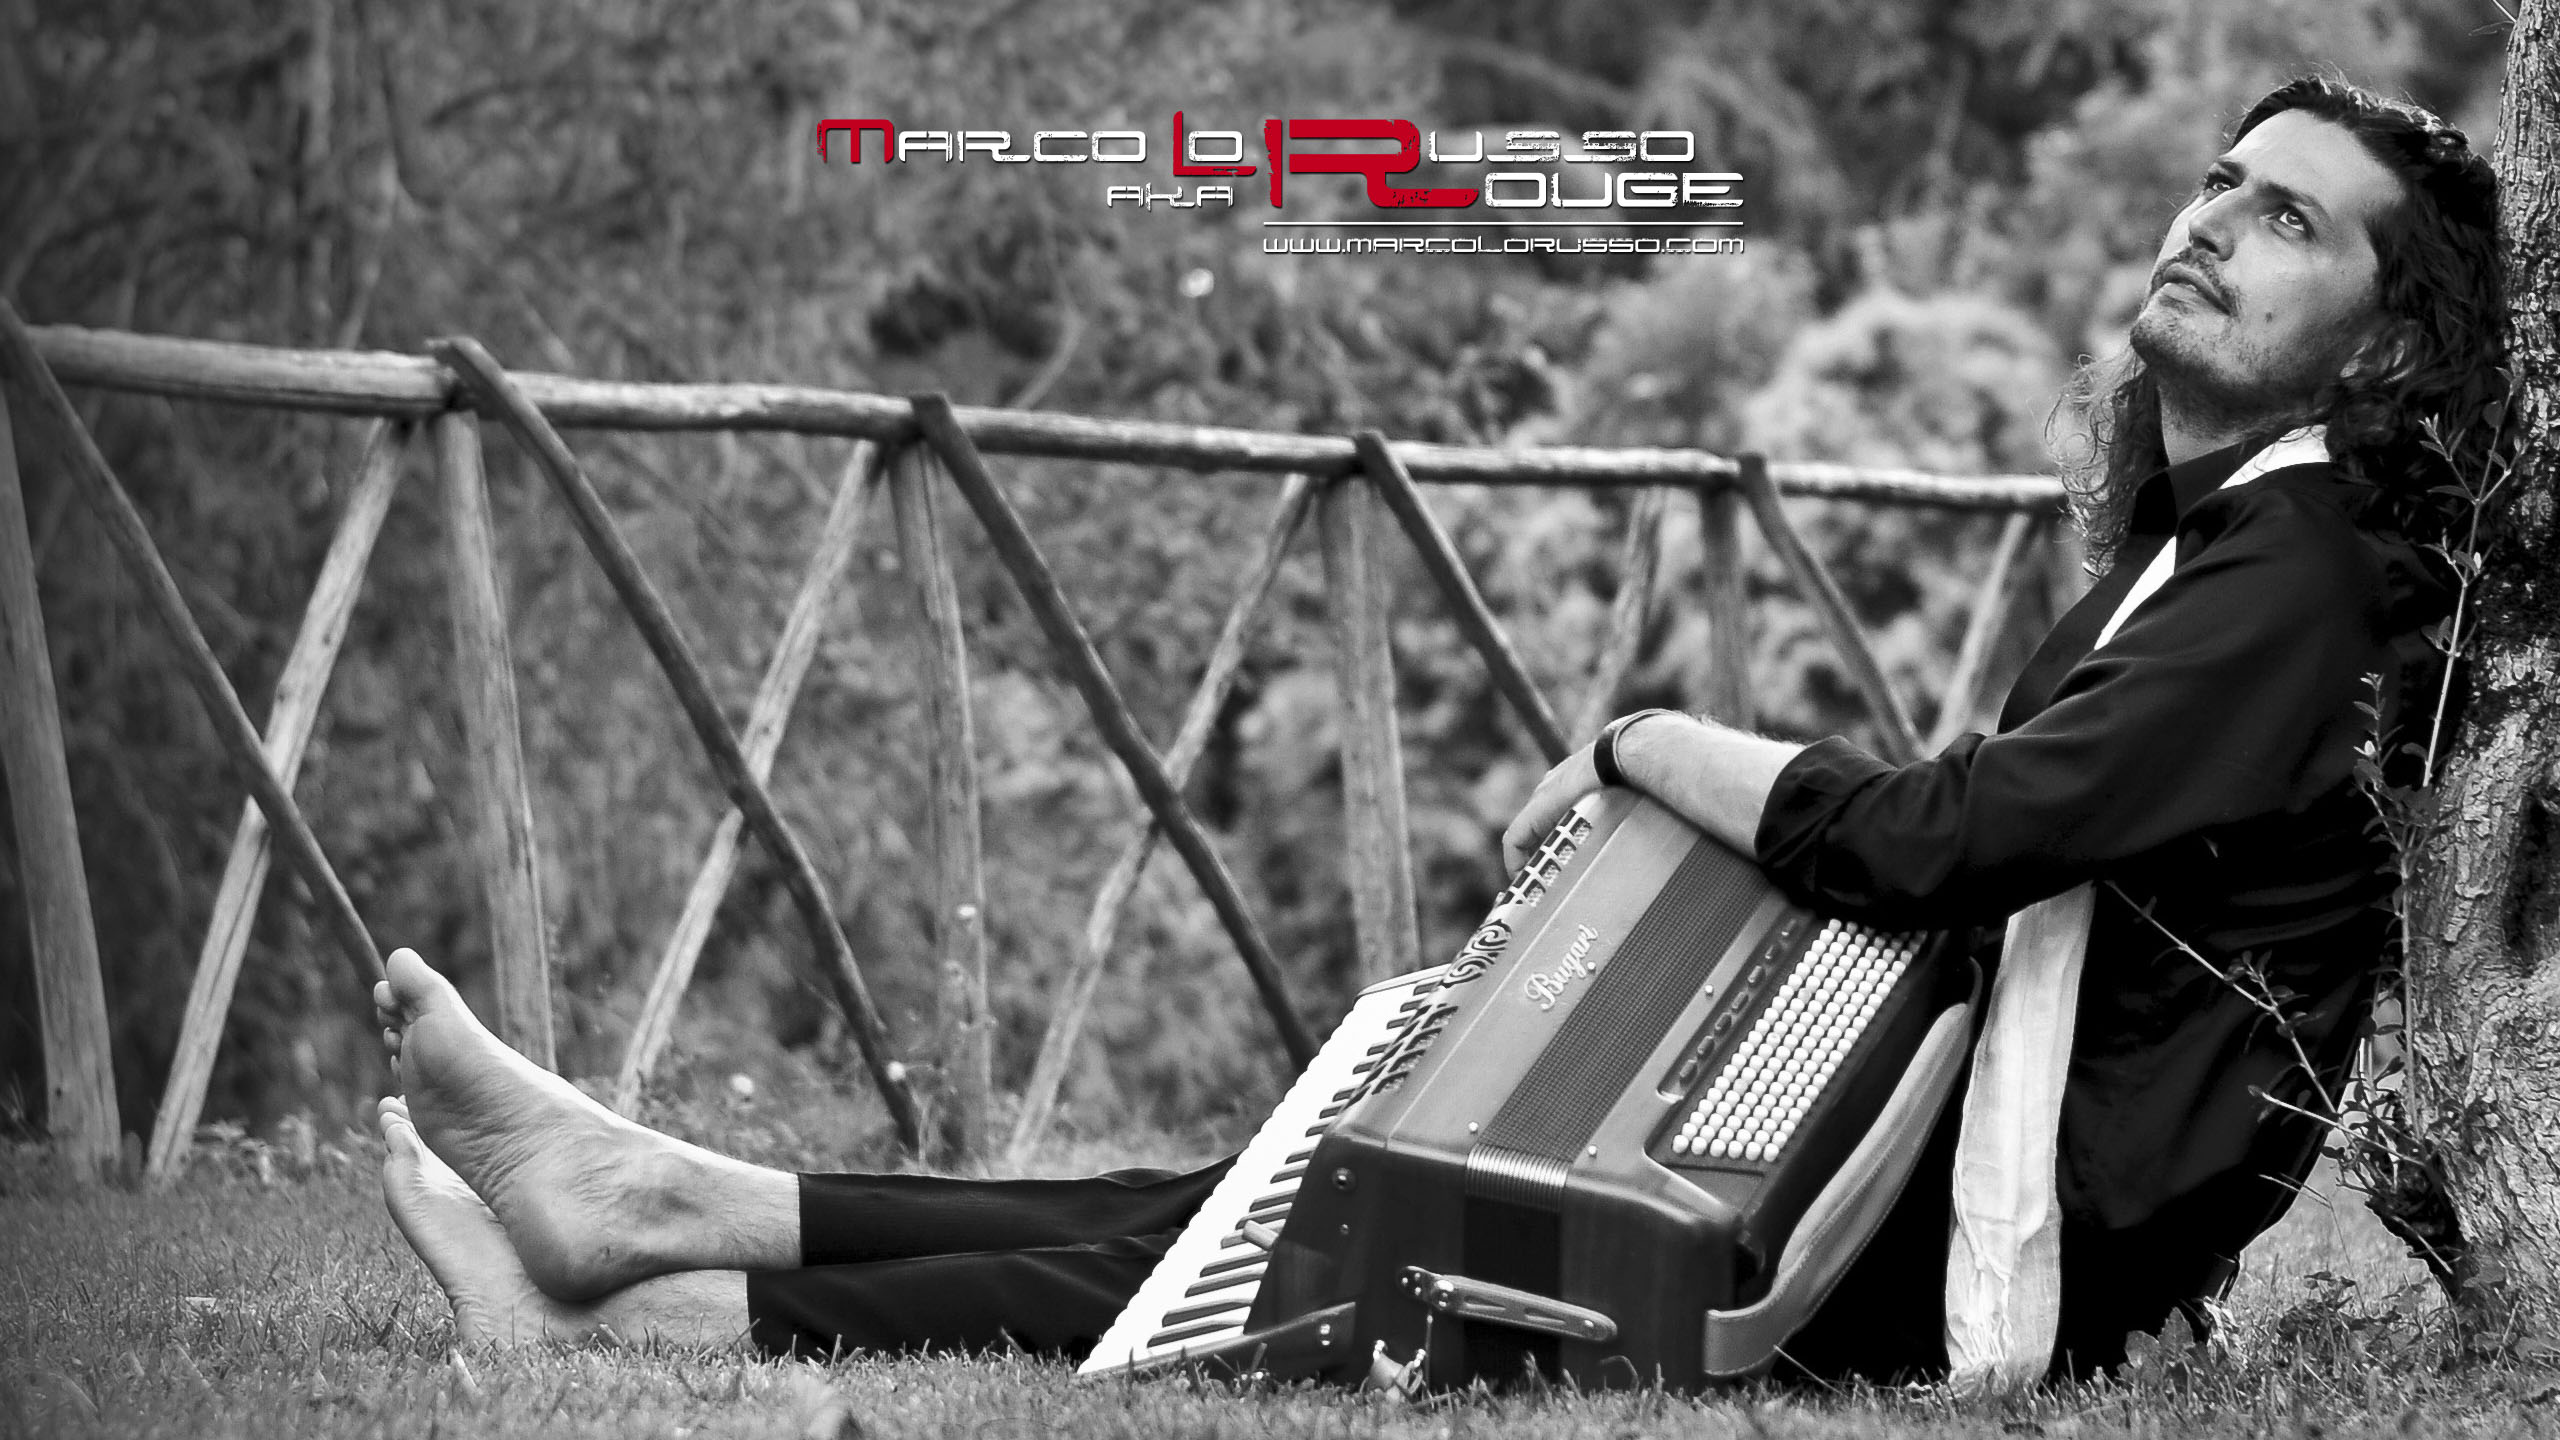 Marco Lo Russo in Modern Accordion